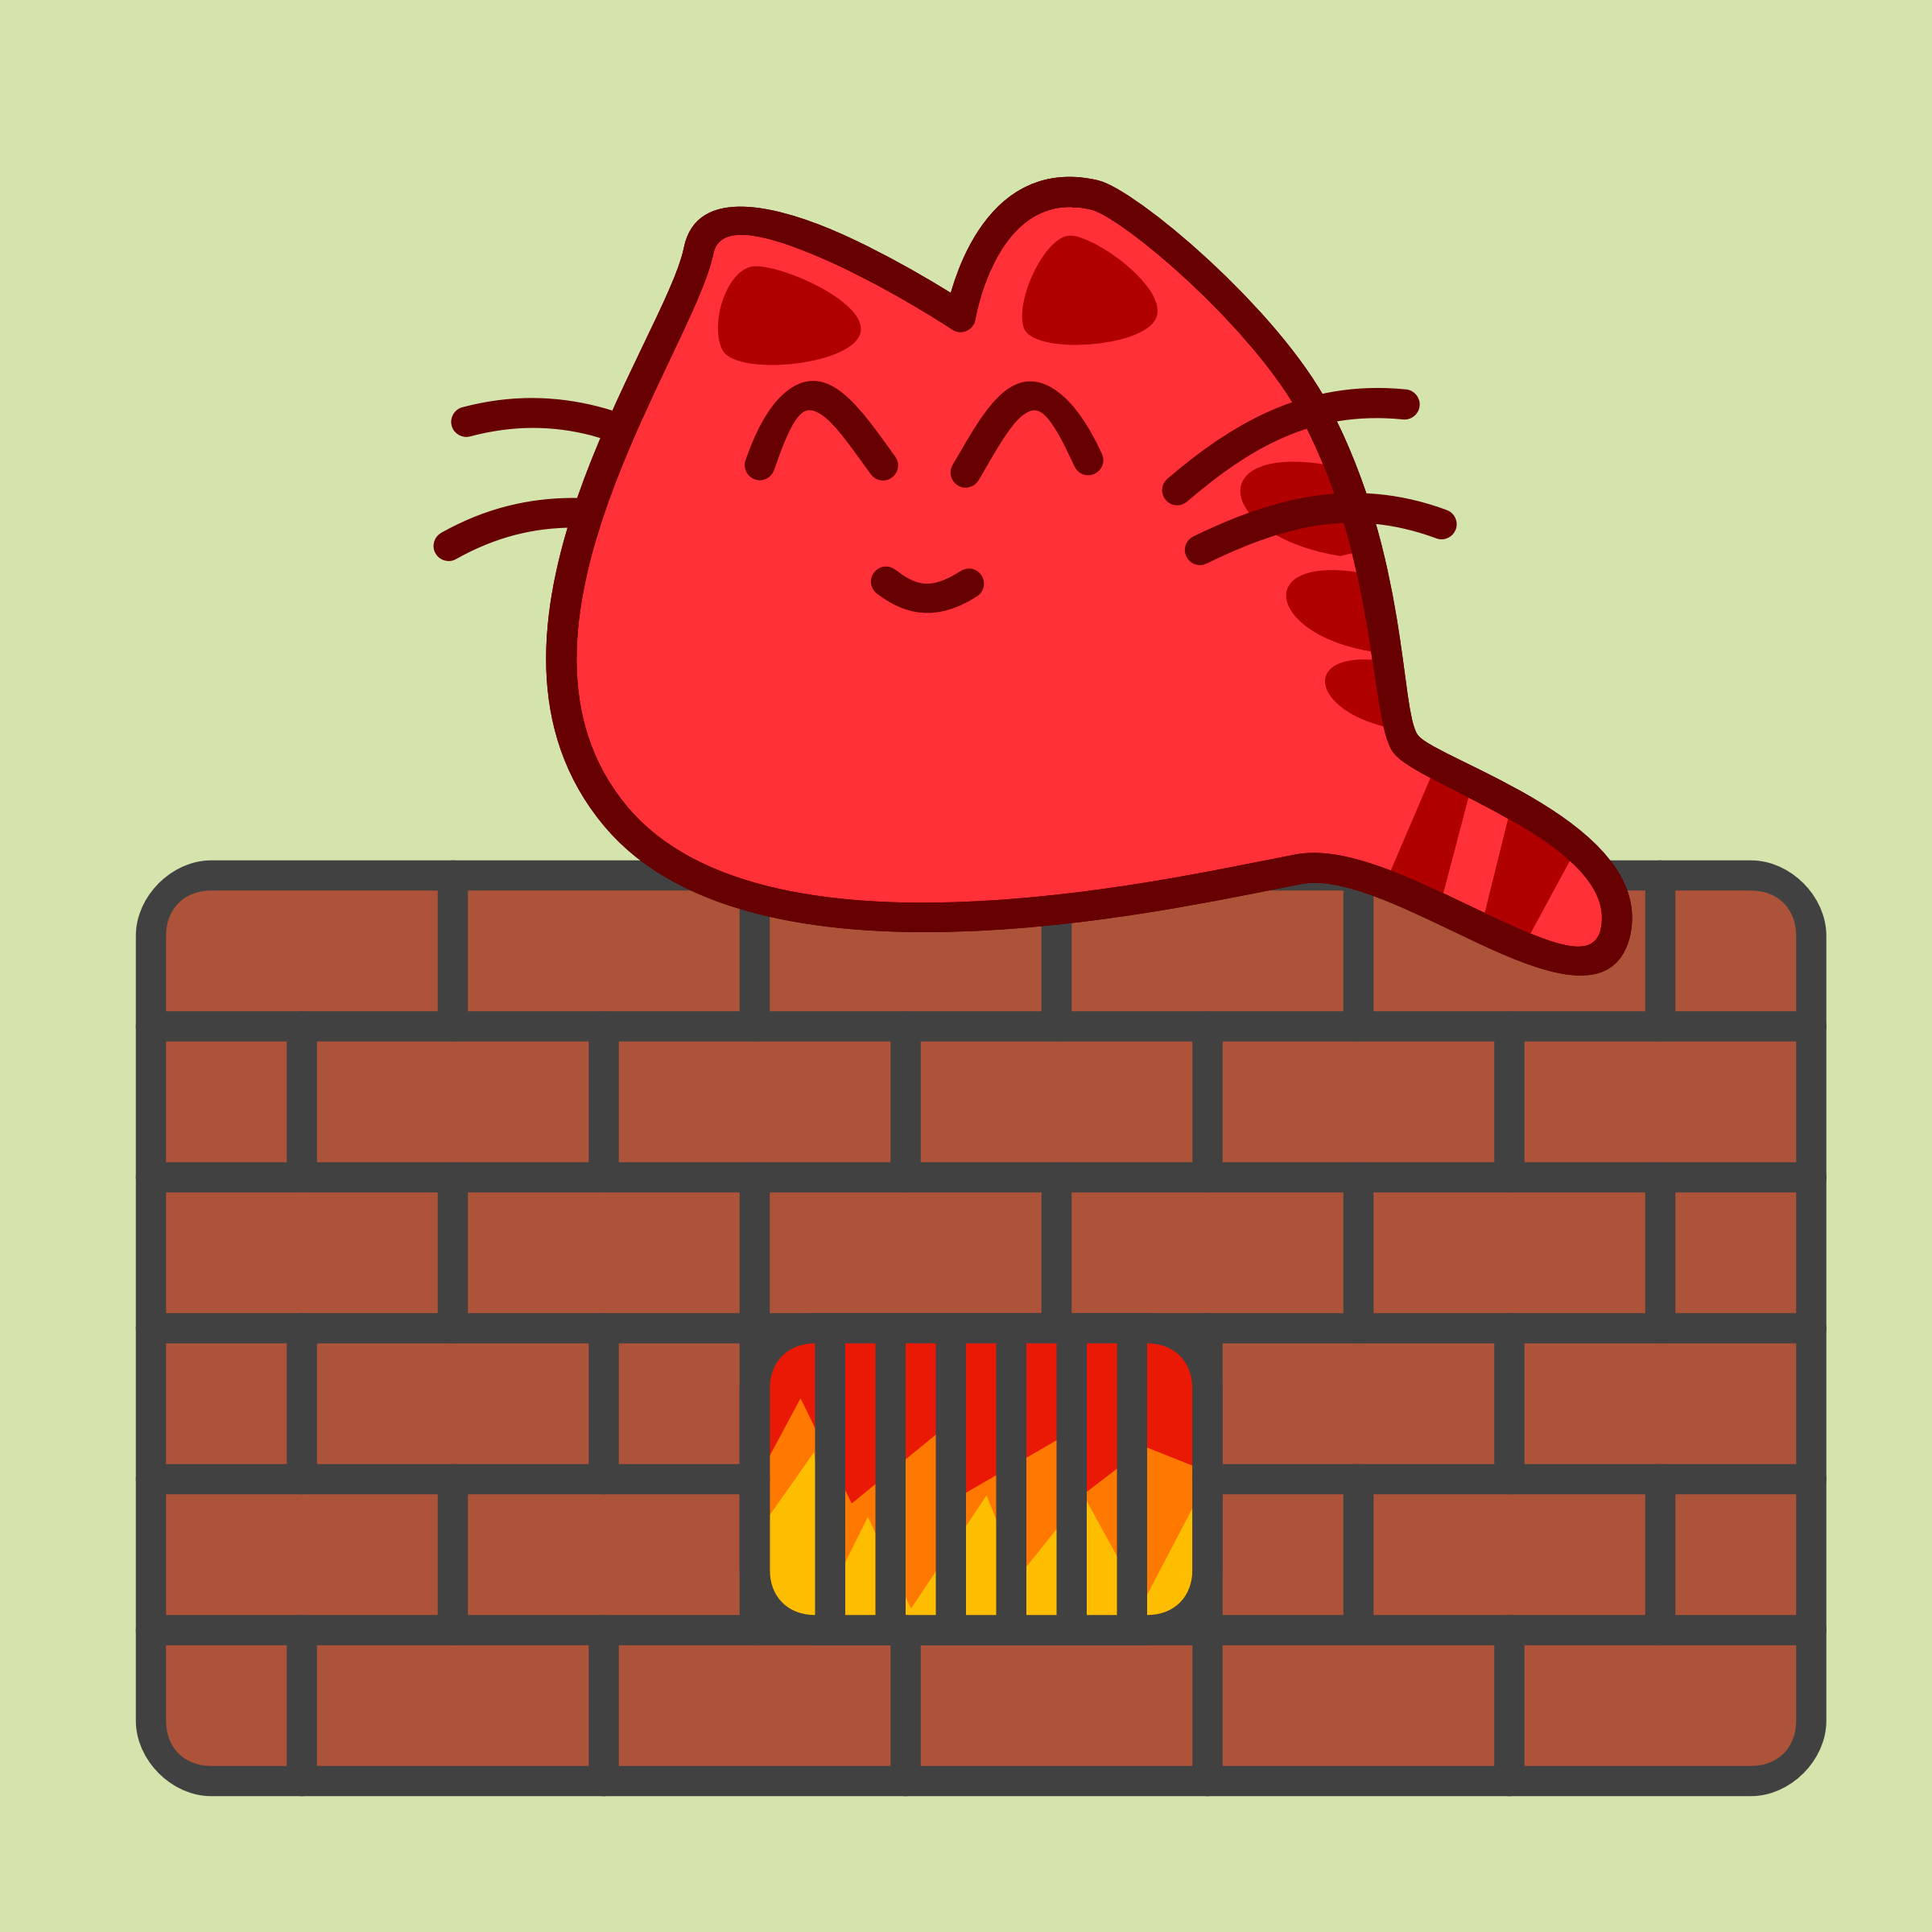 Warmth clipart red flame Clipart Warm Happy on Warm